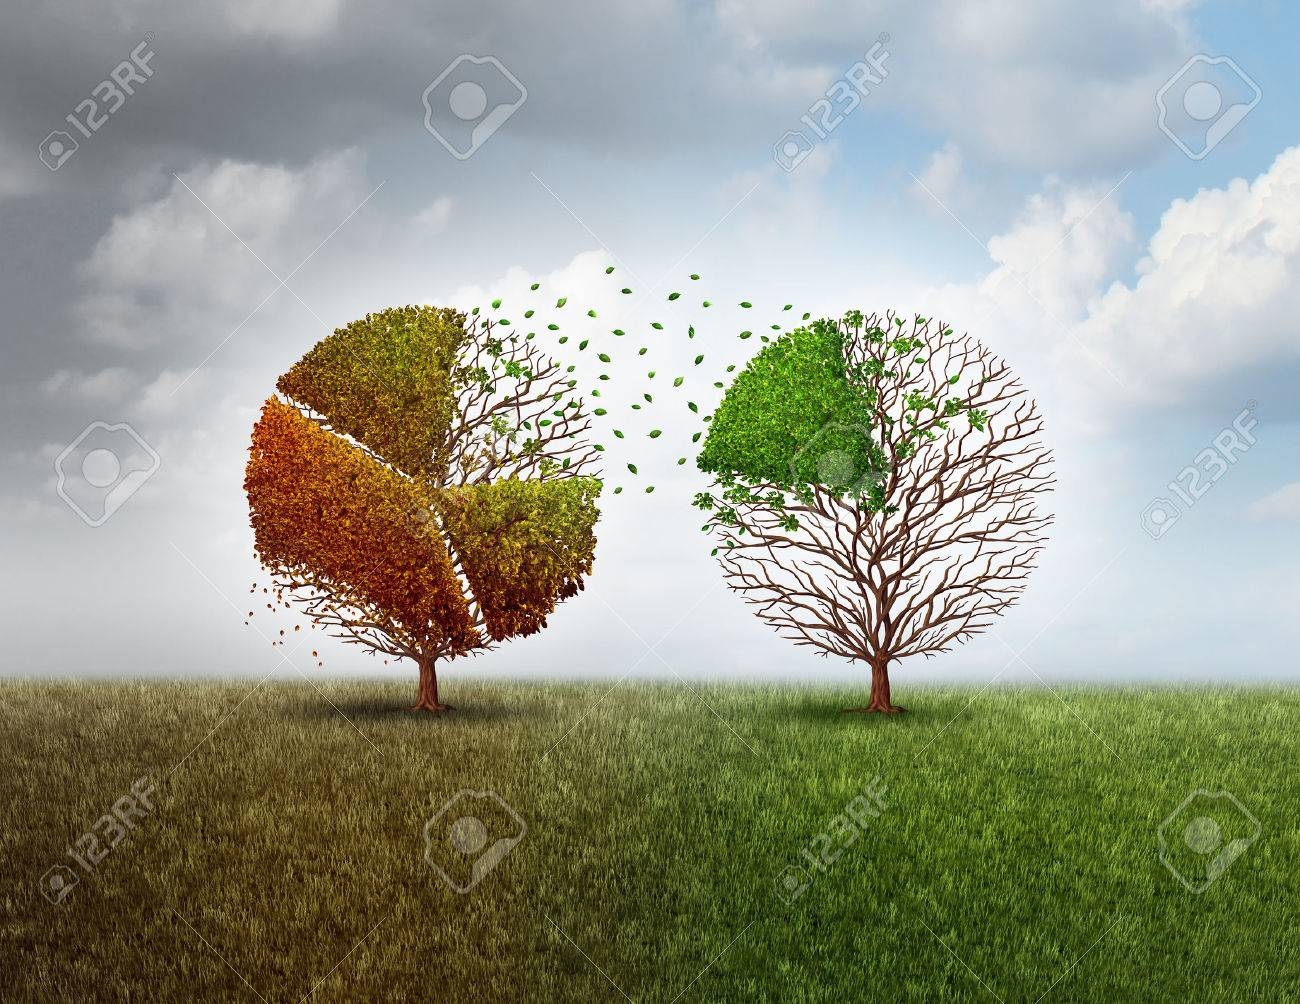 Investing in new business and invest in an economic future while divesting in old industry as a financial metaphor with an old tree shaped as a finance pie chart graph funding another vibrant green tree with 3D illustration elements. Standard-Bild - 64818599